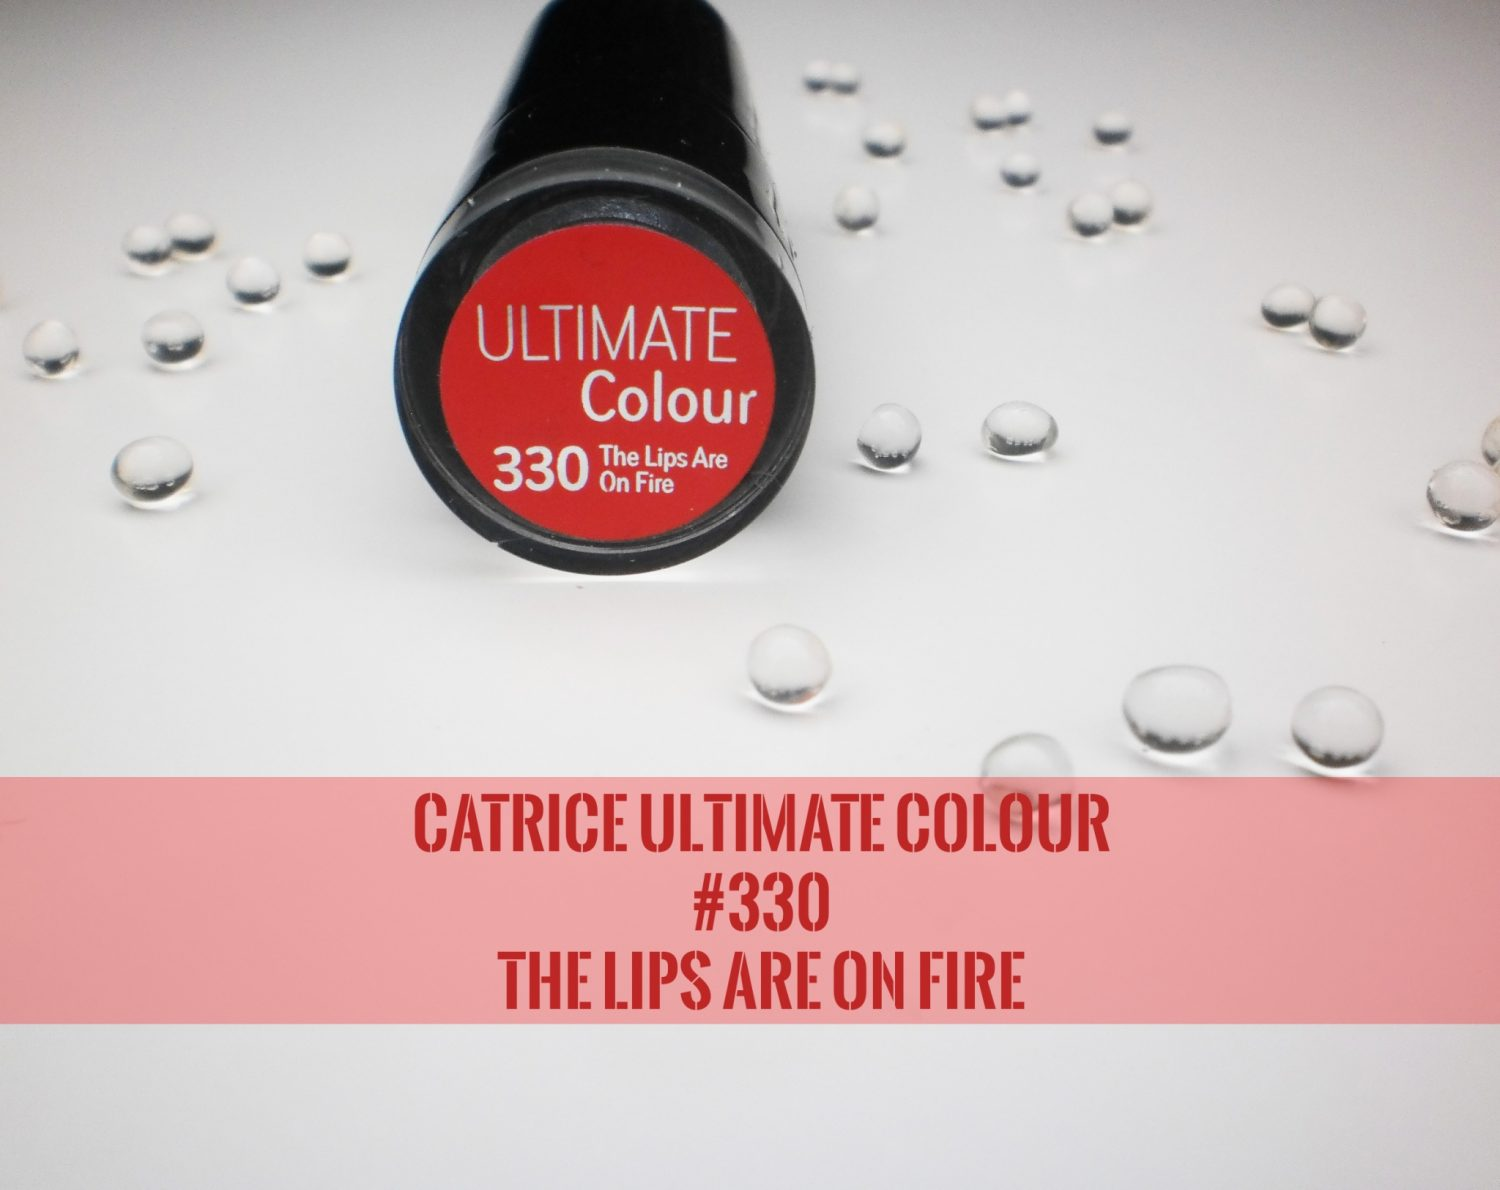 Review: Catrice Ultimate Colour # 330 The Lips Are On Fire